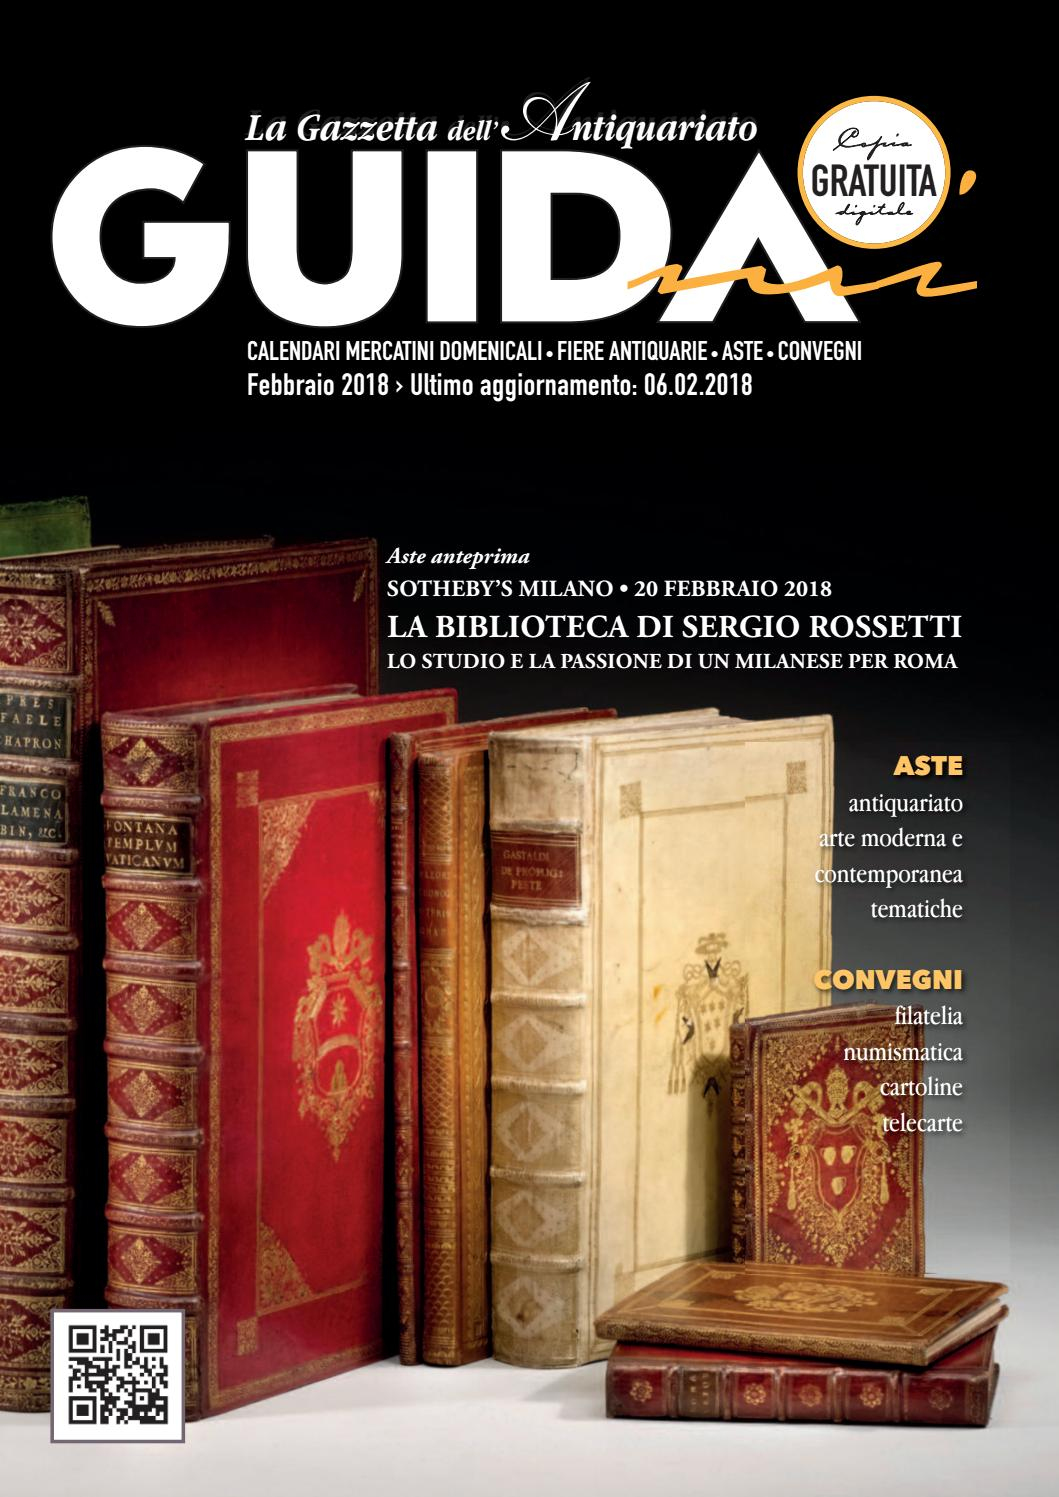 Calendario Aste Antiquariato Italia.Guidami Febbraio 2018 By La Gazzetta Dell Antiquariato Issuu